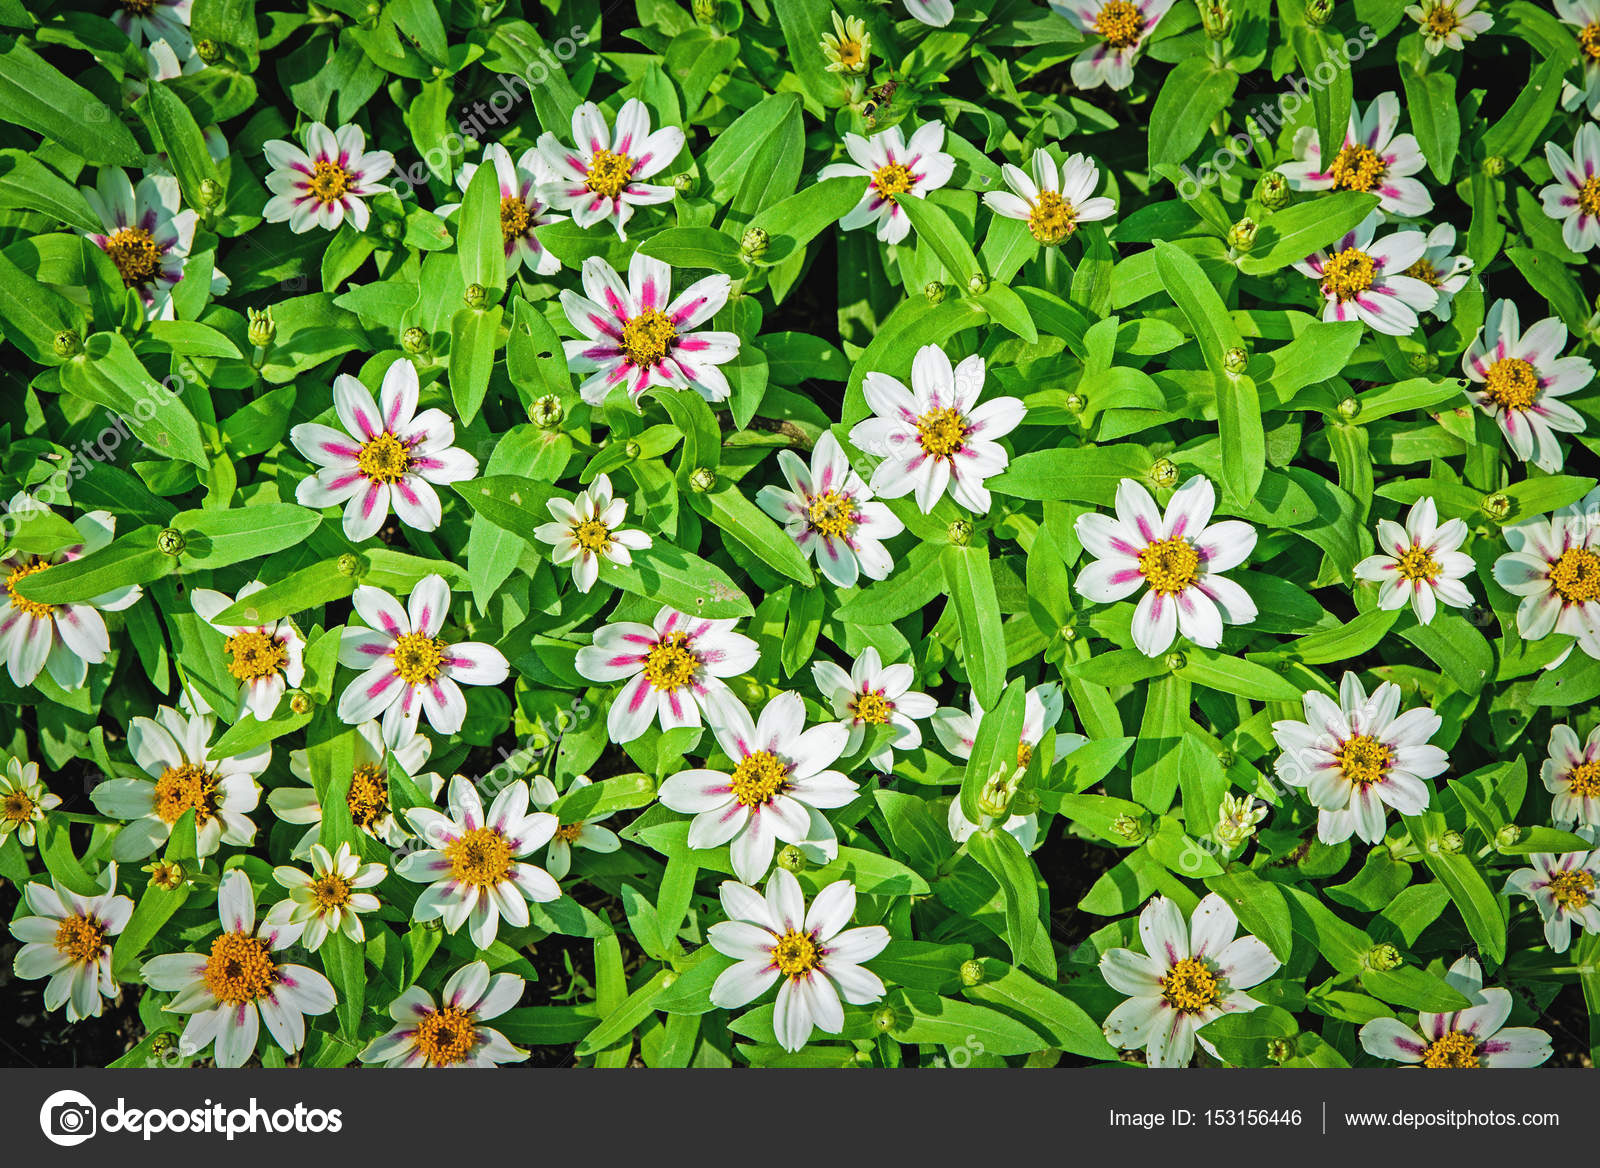 Pretty White Flowers Blooming In A Garden In Top View For Backgr